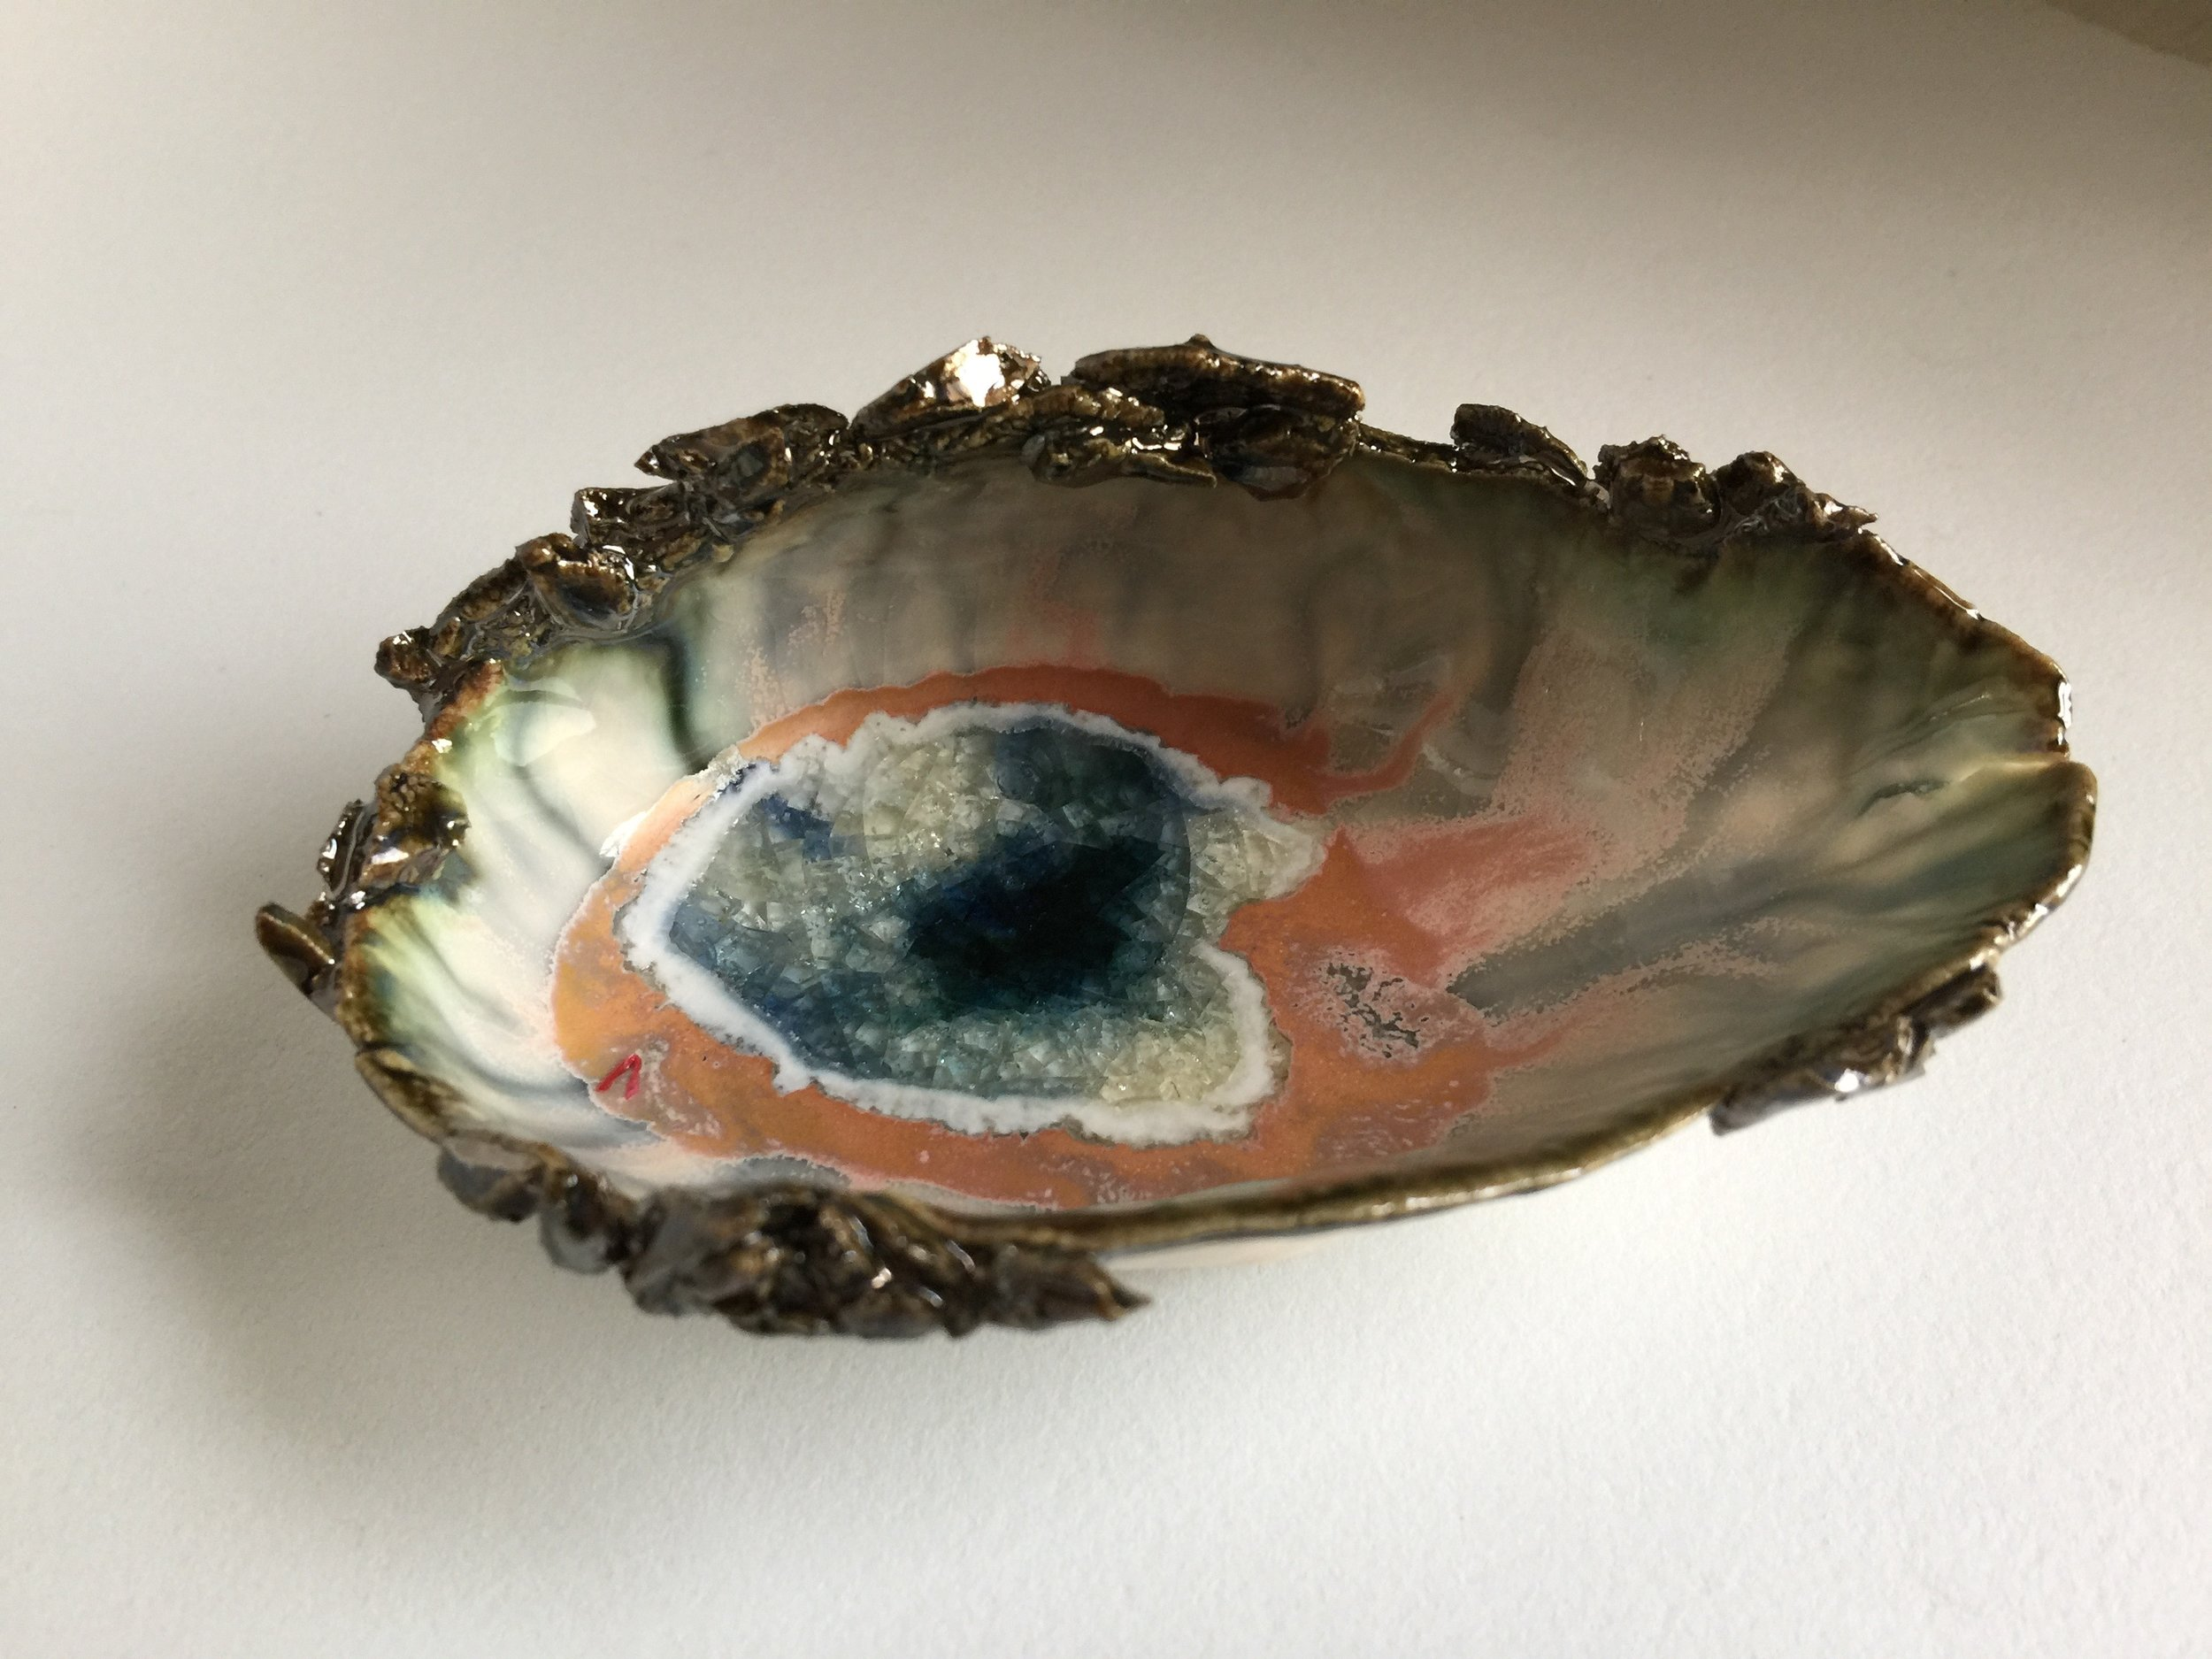 12 Small Iceland Shell with Silver Crust - Blue Lagoon.jpg